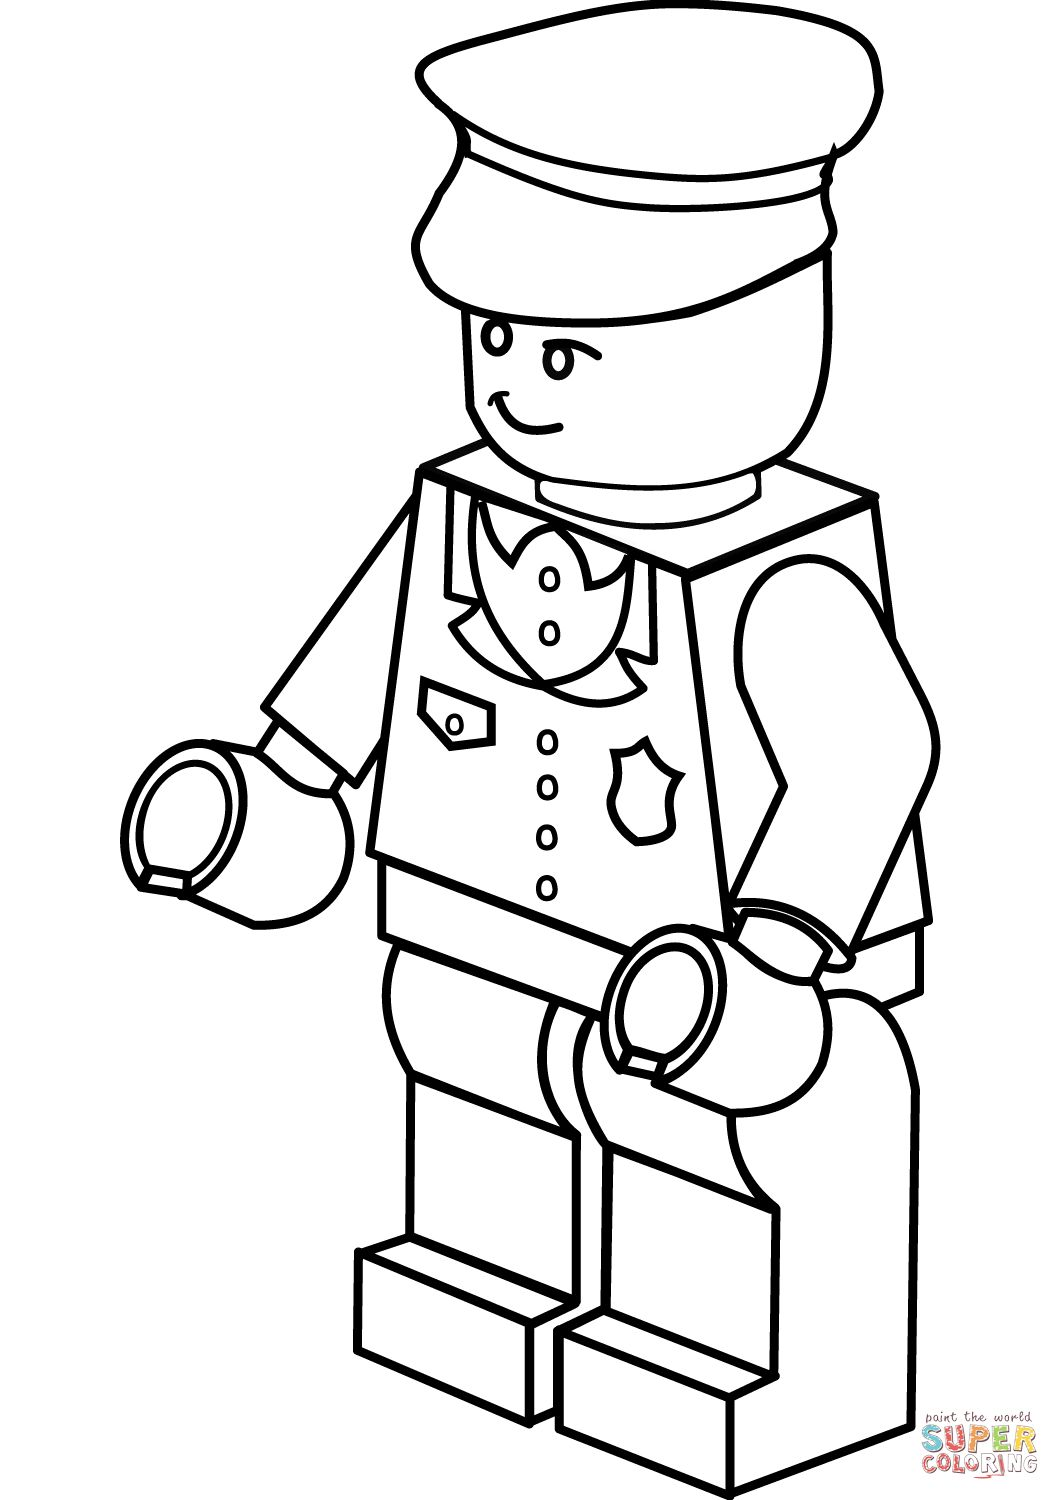 police coloring pages police officer coloring pages to download and print for free police coloring pages 1 1